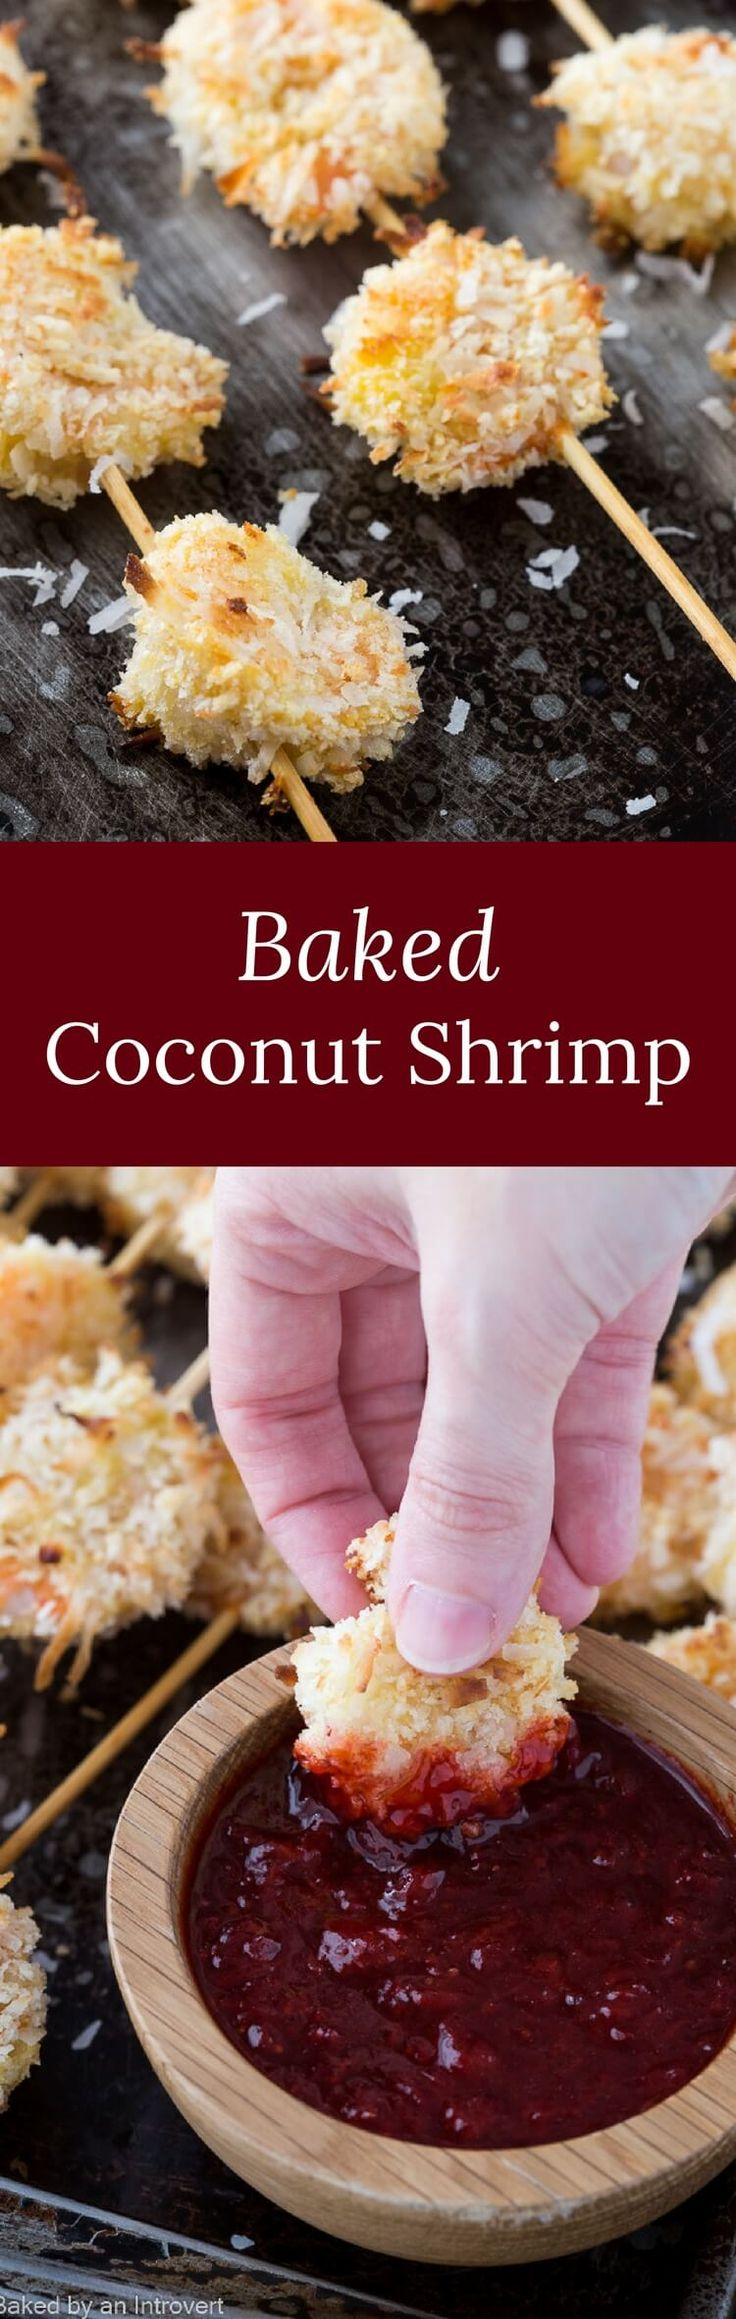 Baked Coconut Shrimp with Spicy Strawberry Chutney is going to be a big hit at your next dinner party. via @introvertbaker